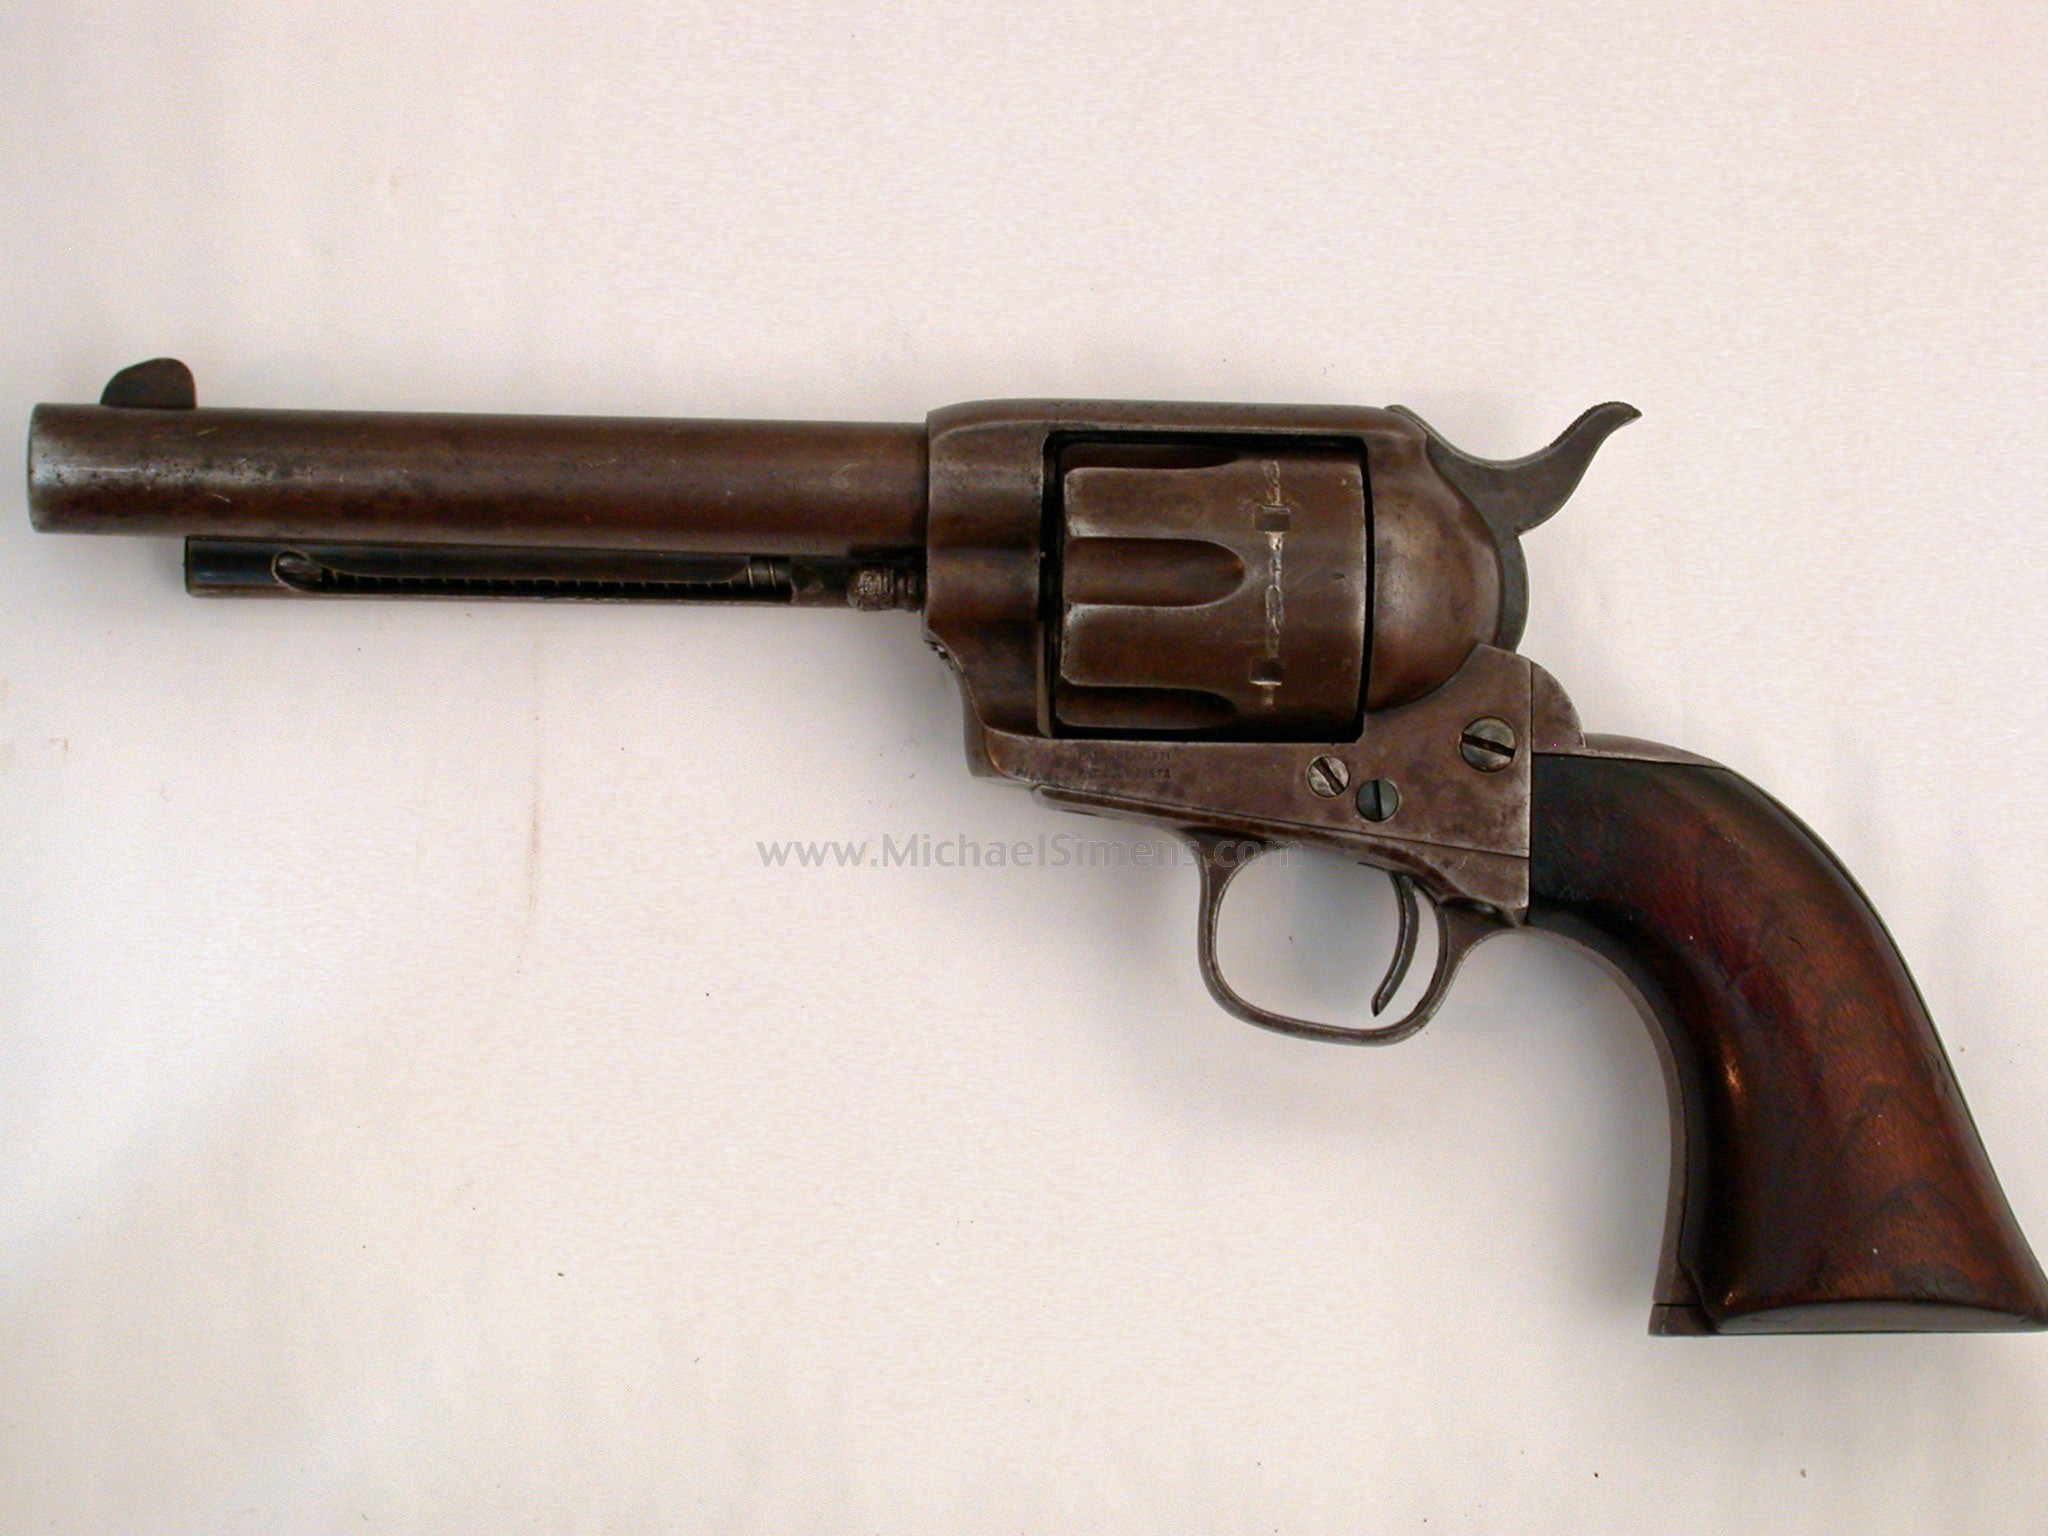 colt single personals Colt single action new frontier is one of the most recognizable handguns ever produced my gun shows a patent date of 1873 in spite of it being new.